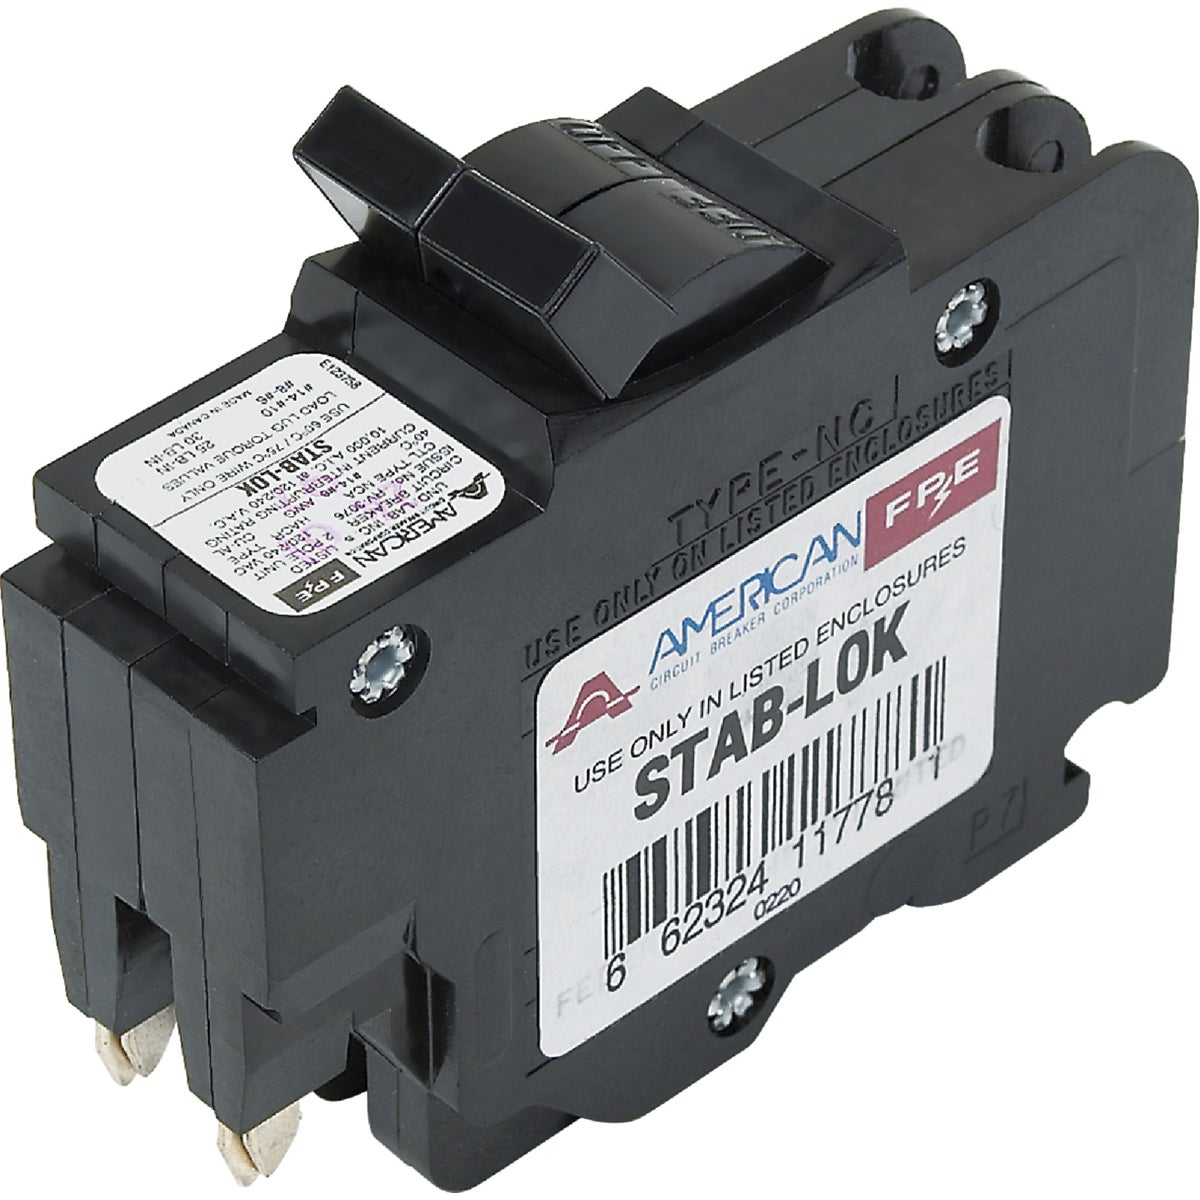 30A 2P CIRCUIT BREAKER - UBIF0230N by Connecticut Electric